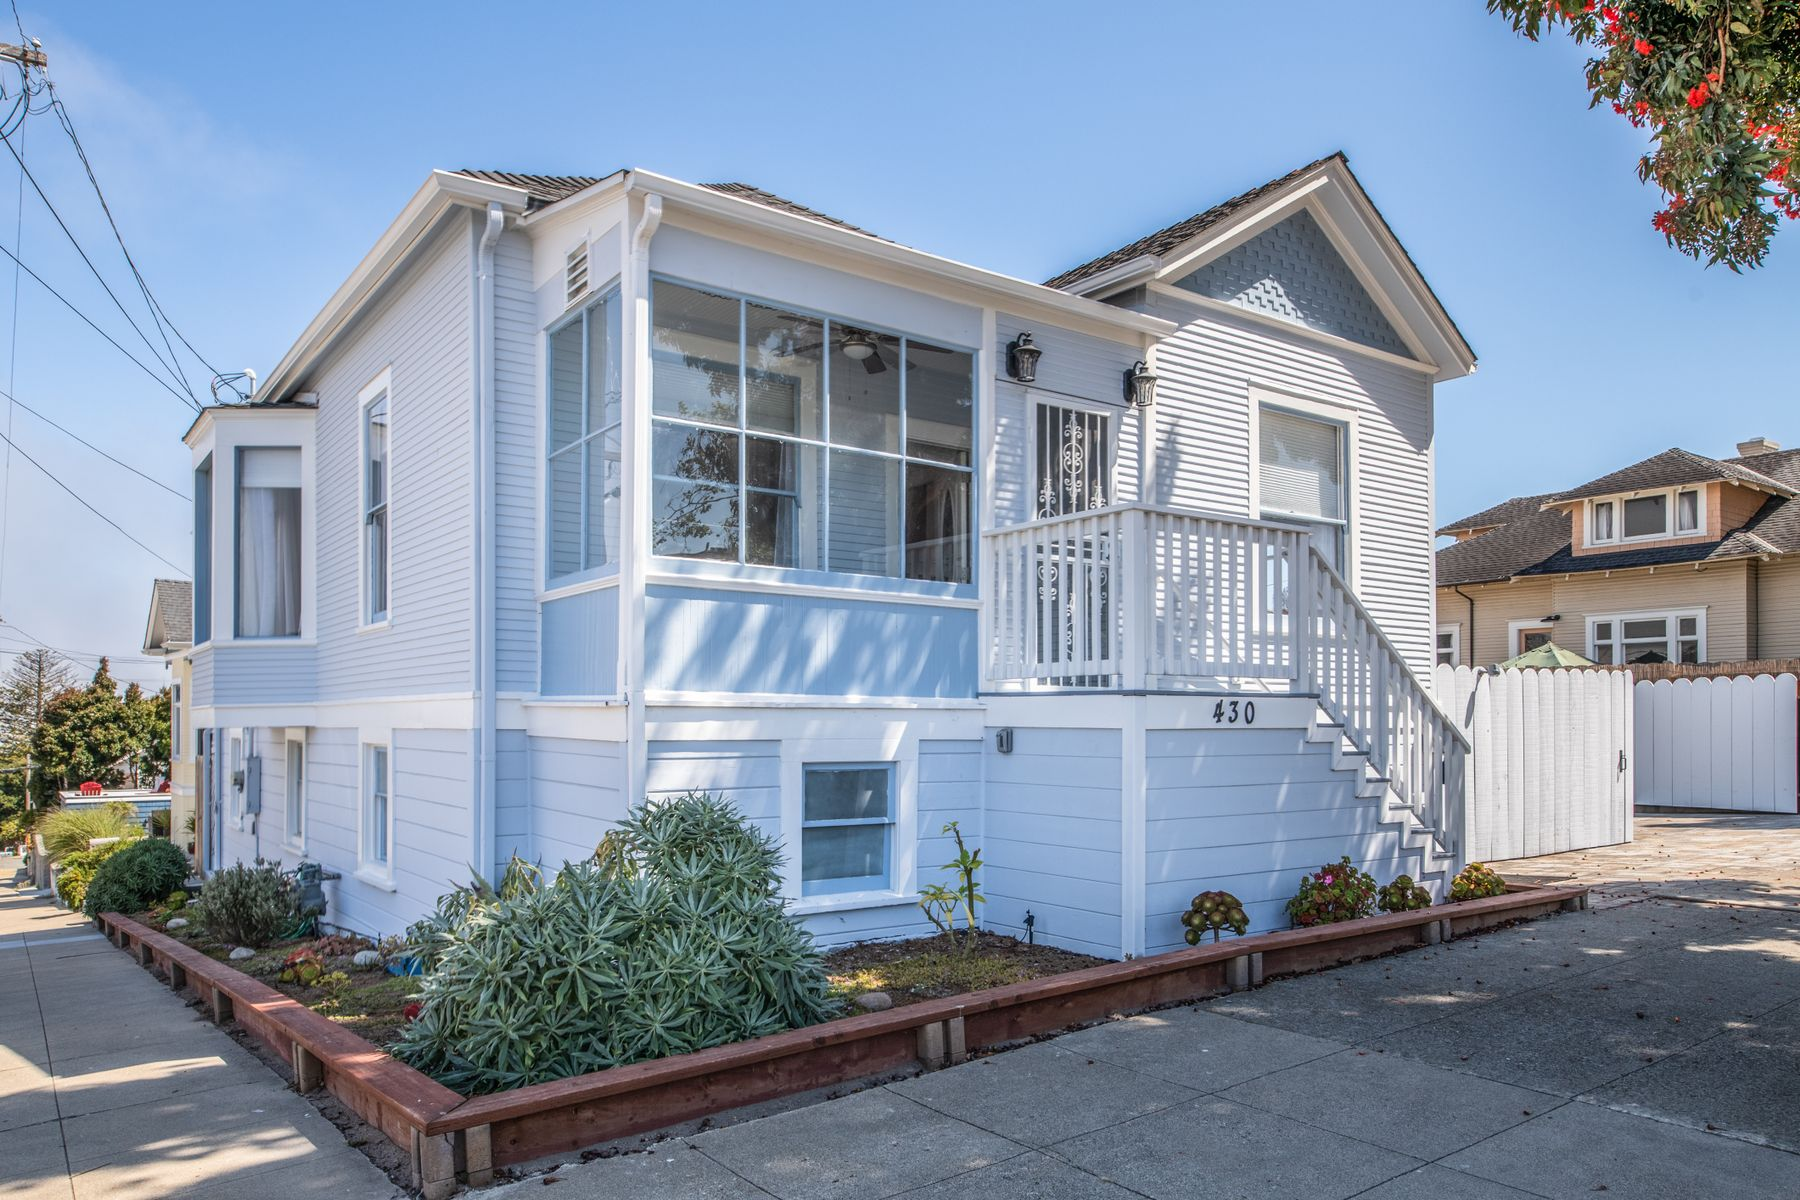 Single Family Homes for Sale at Remodeled Beach Bungalow 430 Pine Avenue Pacific Grove, California 93950 United States